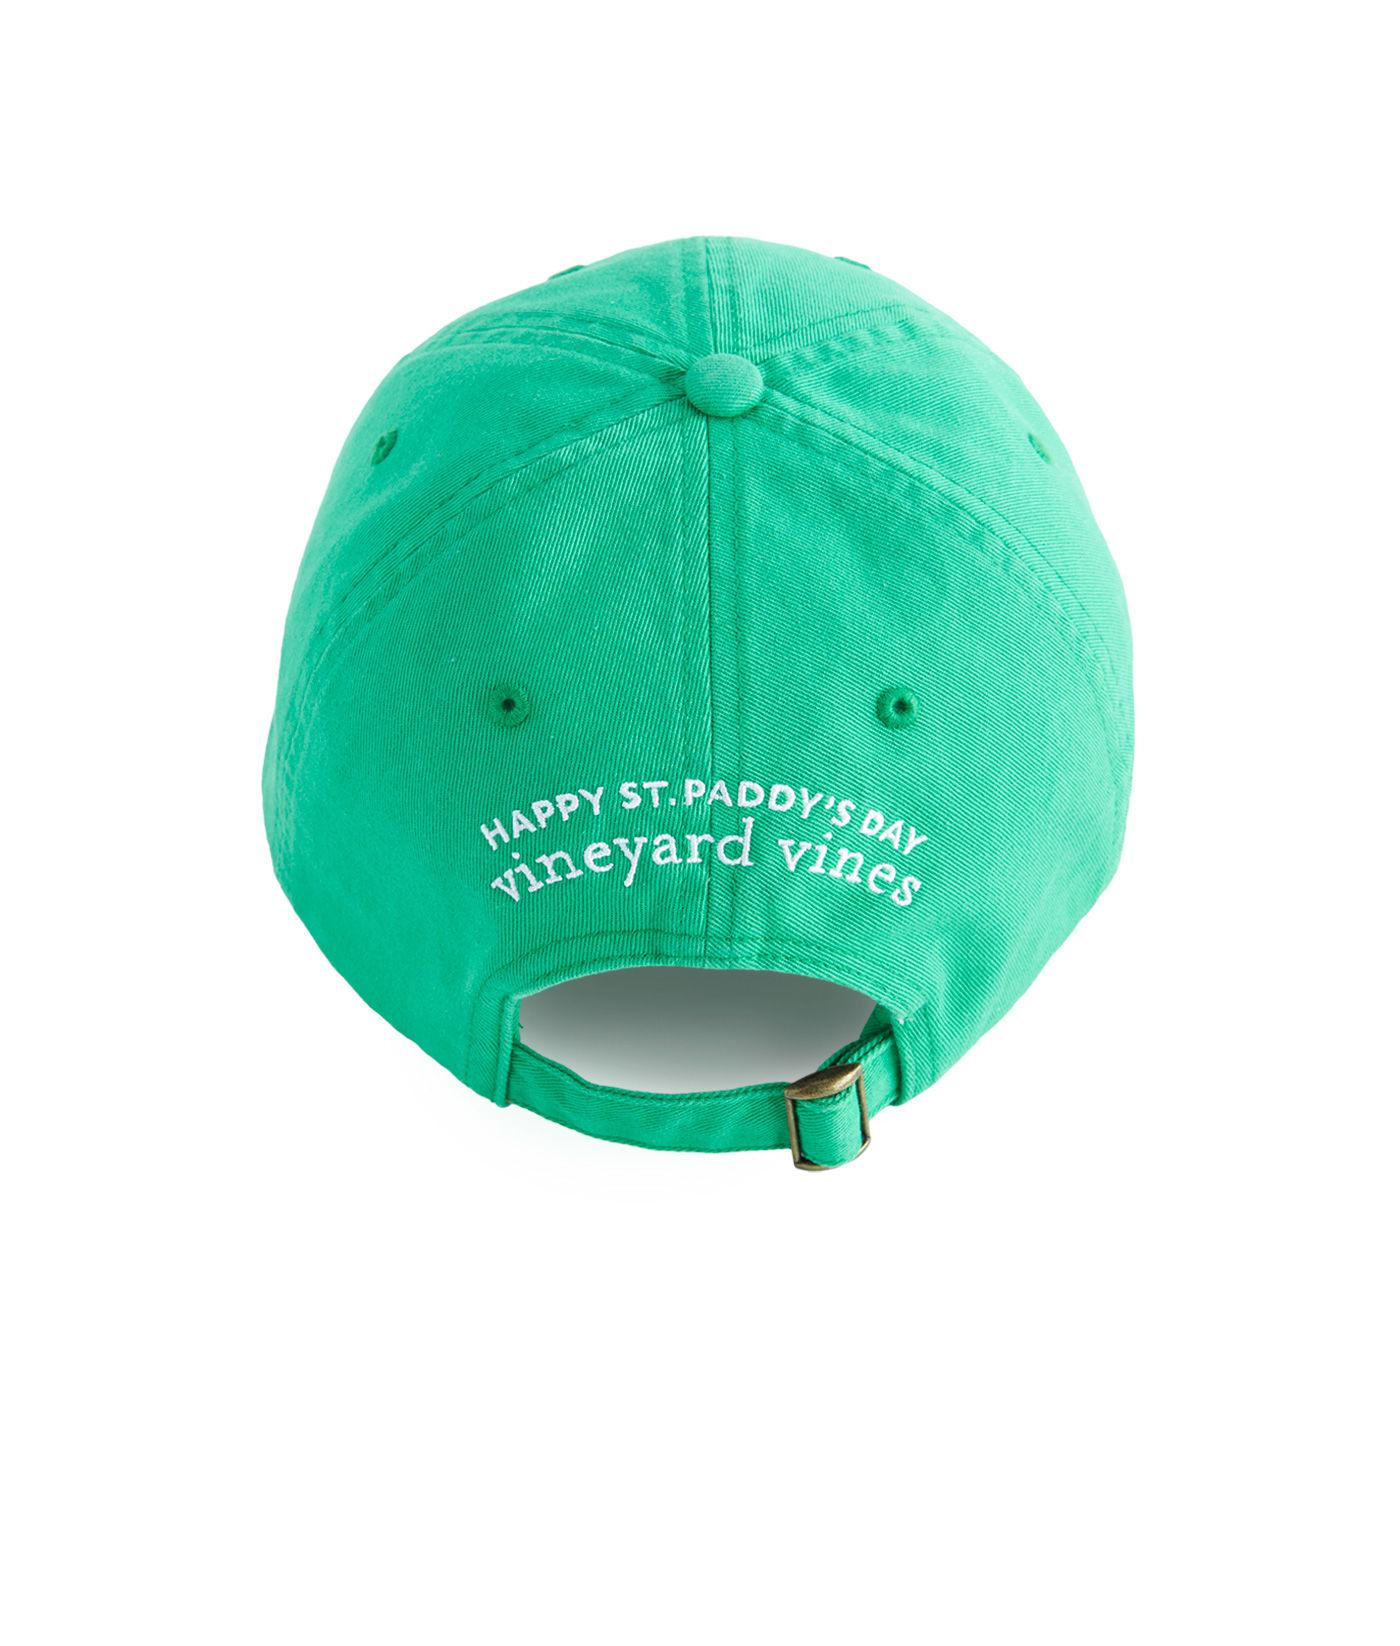 Lyst - Vineyard Vines St. Paddy s Day 2018 Hat in Green for Men faf2db847772